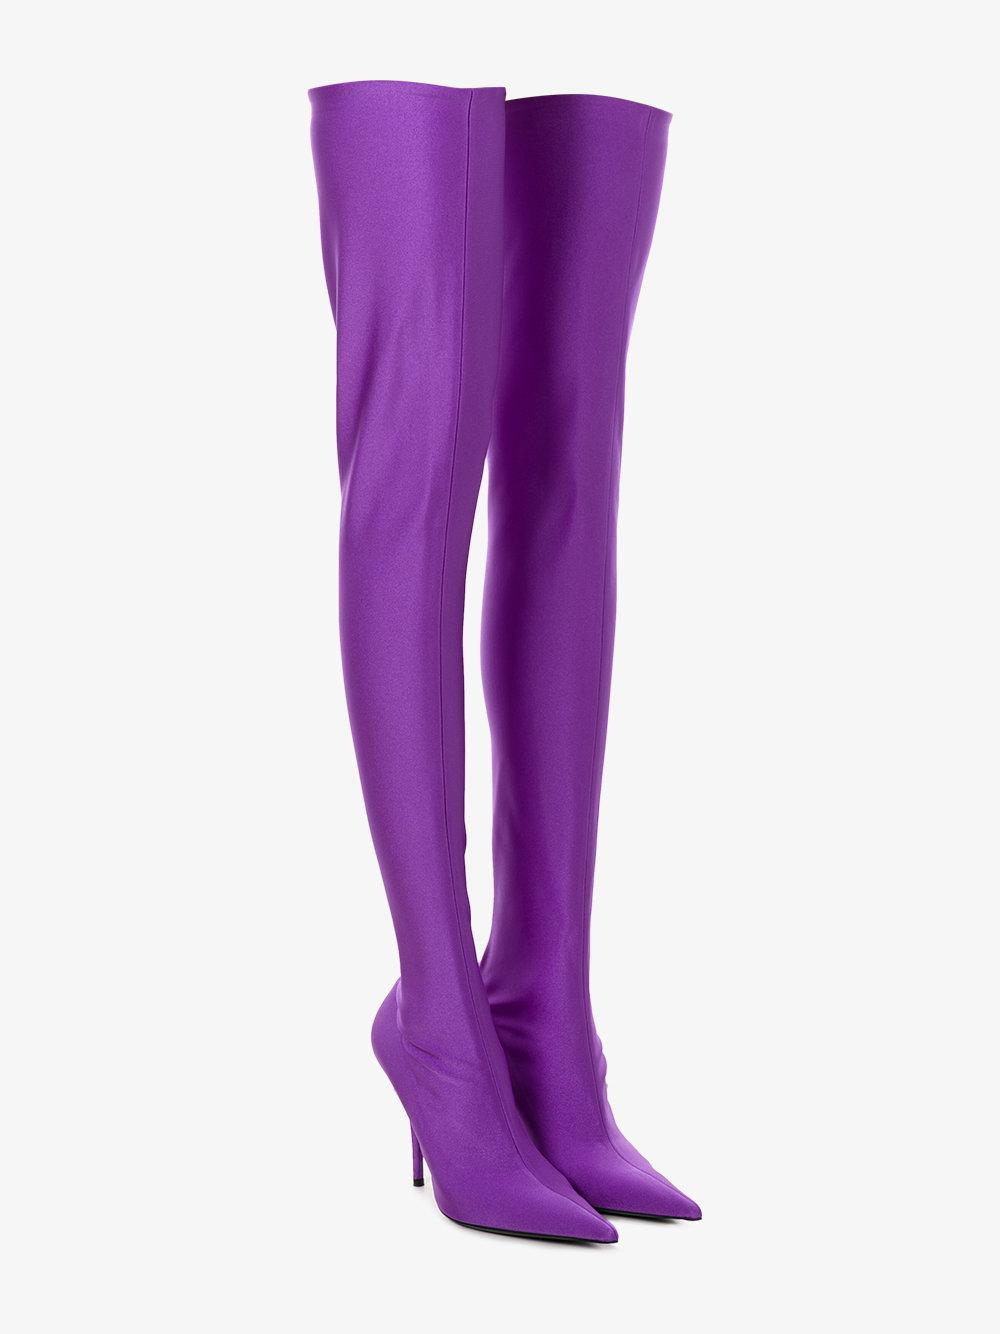 Balenciaga Leather Knife Over-the-knee Booties in Pink/Purple (Purple)